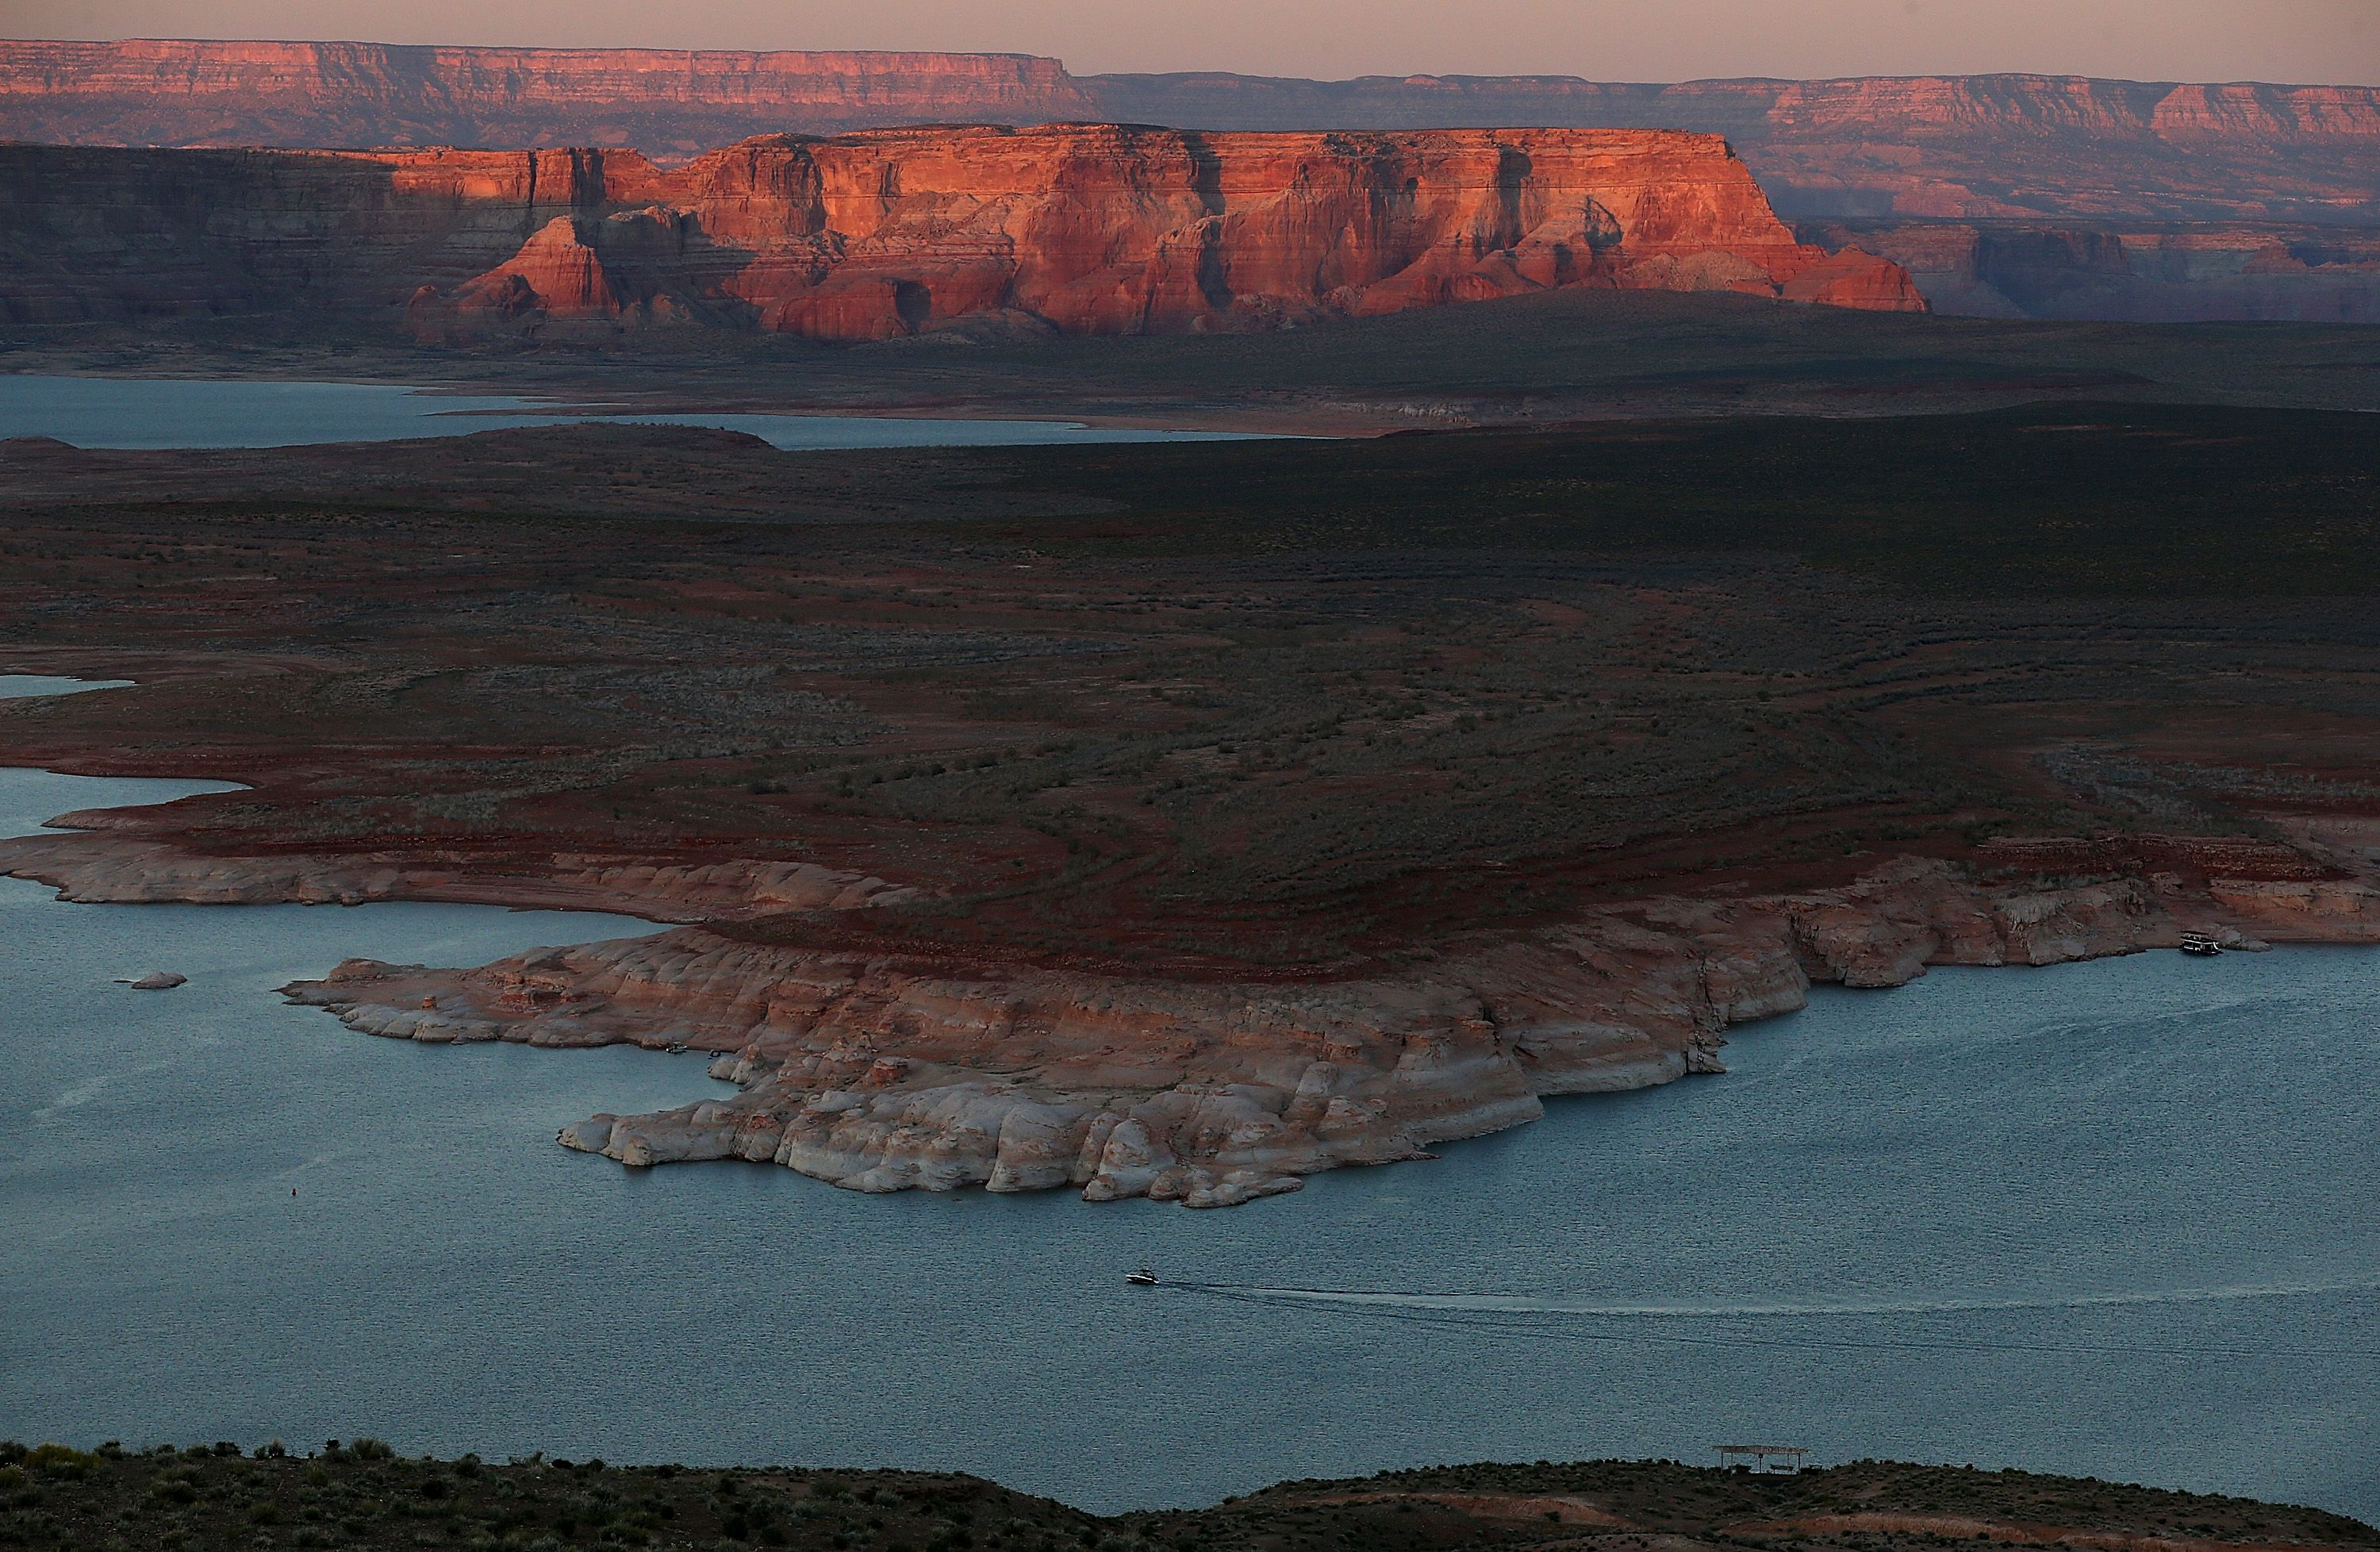 1.5 billion tons of water evaporates from the Colorado River - Axios